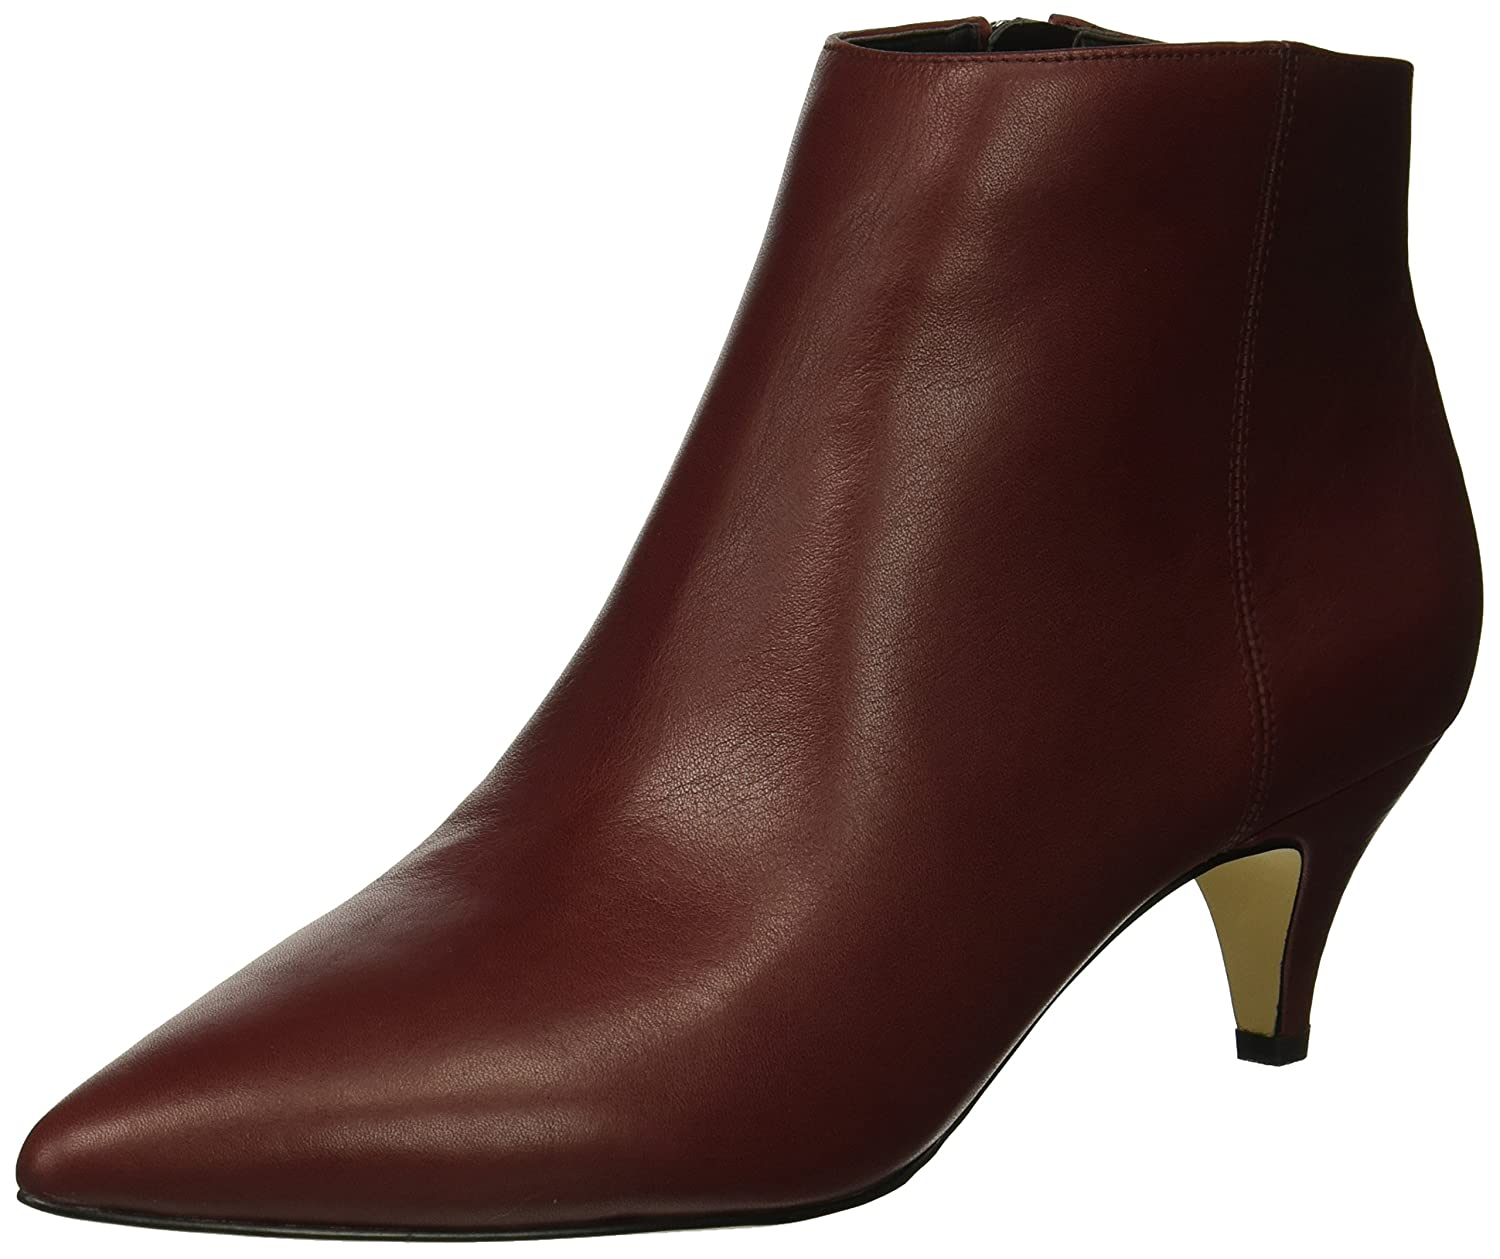 Sam Edelman Women's Kinzey Fashion Boot B07BRB33SC 8.5 W US|Beet Red Leather